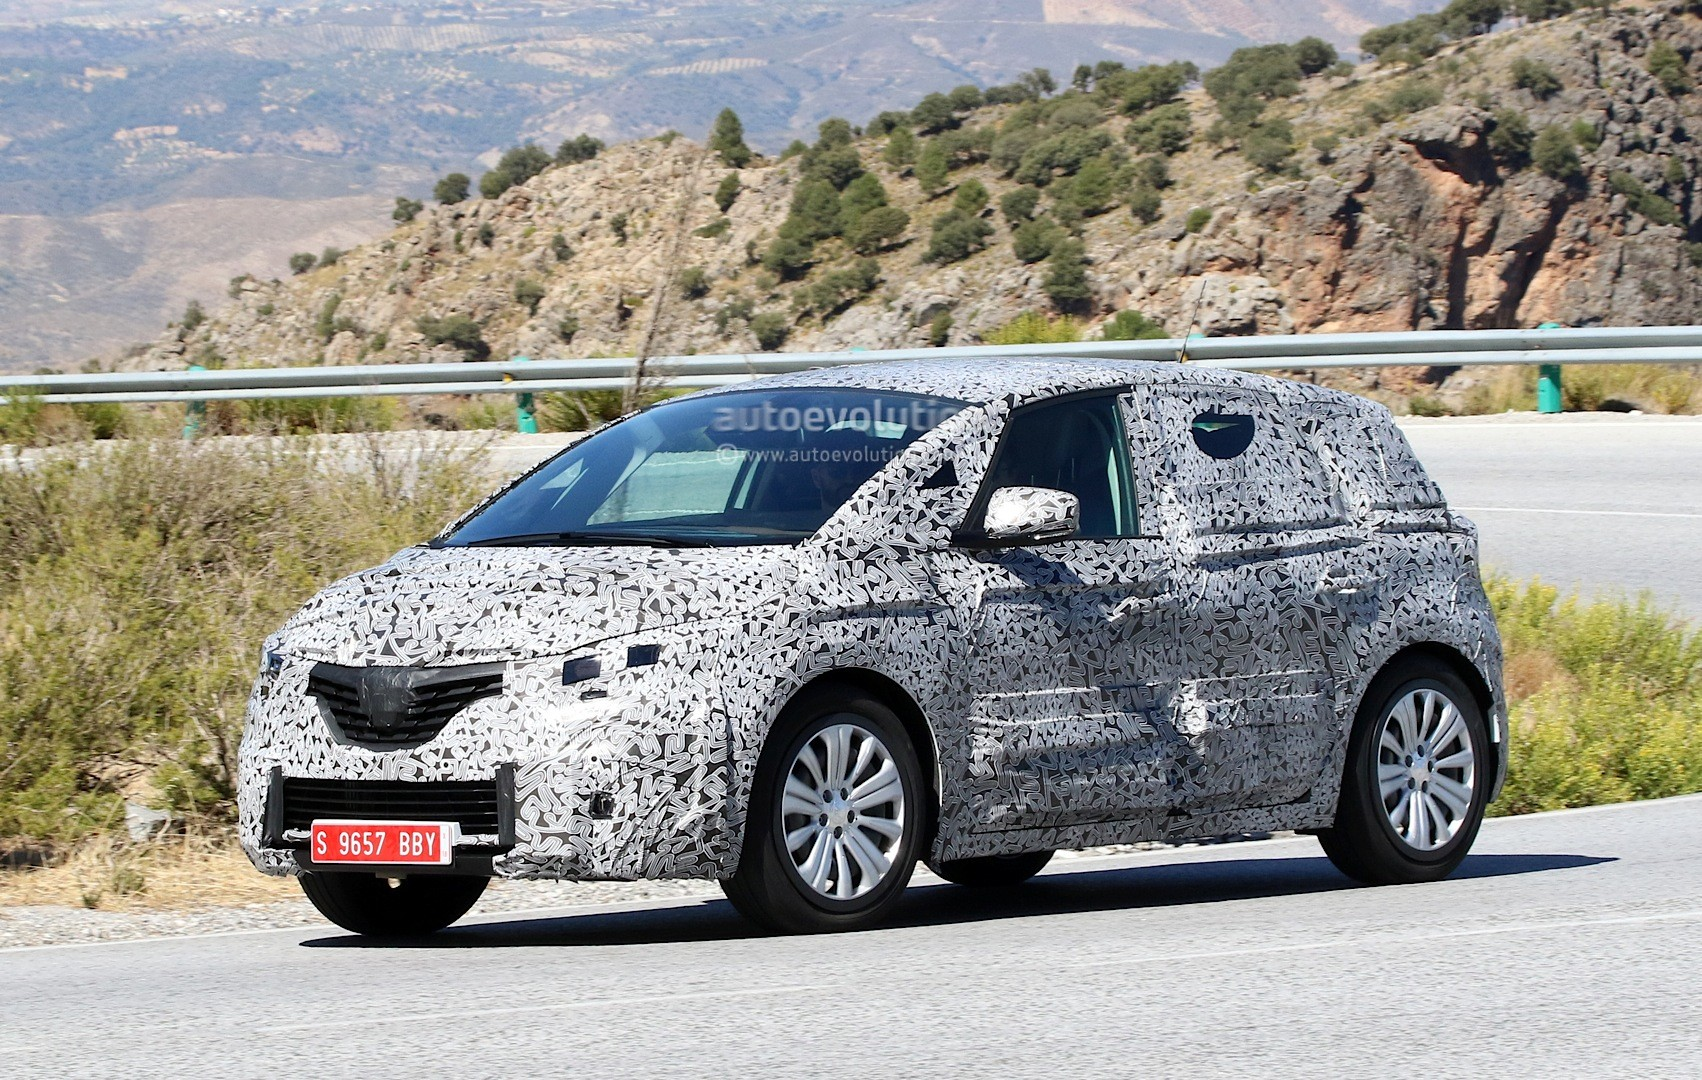 spyshots 2017 renault scenic production model seen for the first time autoevolution. Black Bedroom Furniture Sets. Home Design Ideas